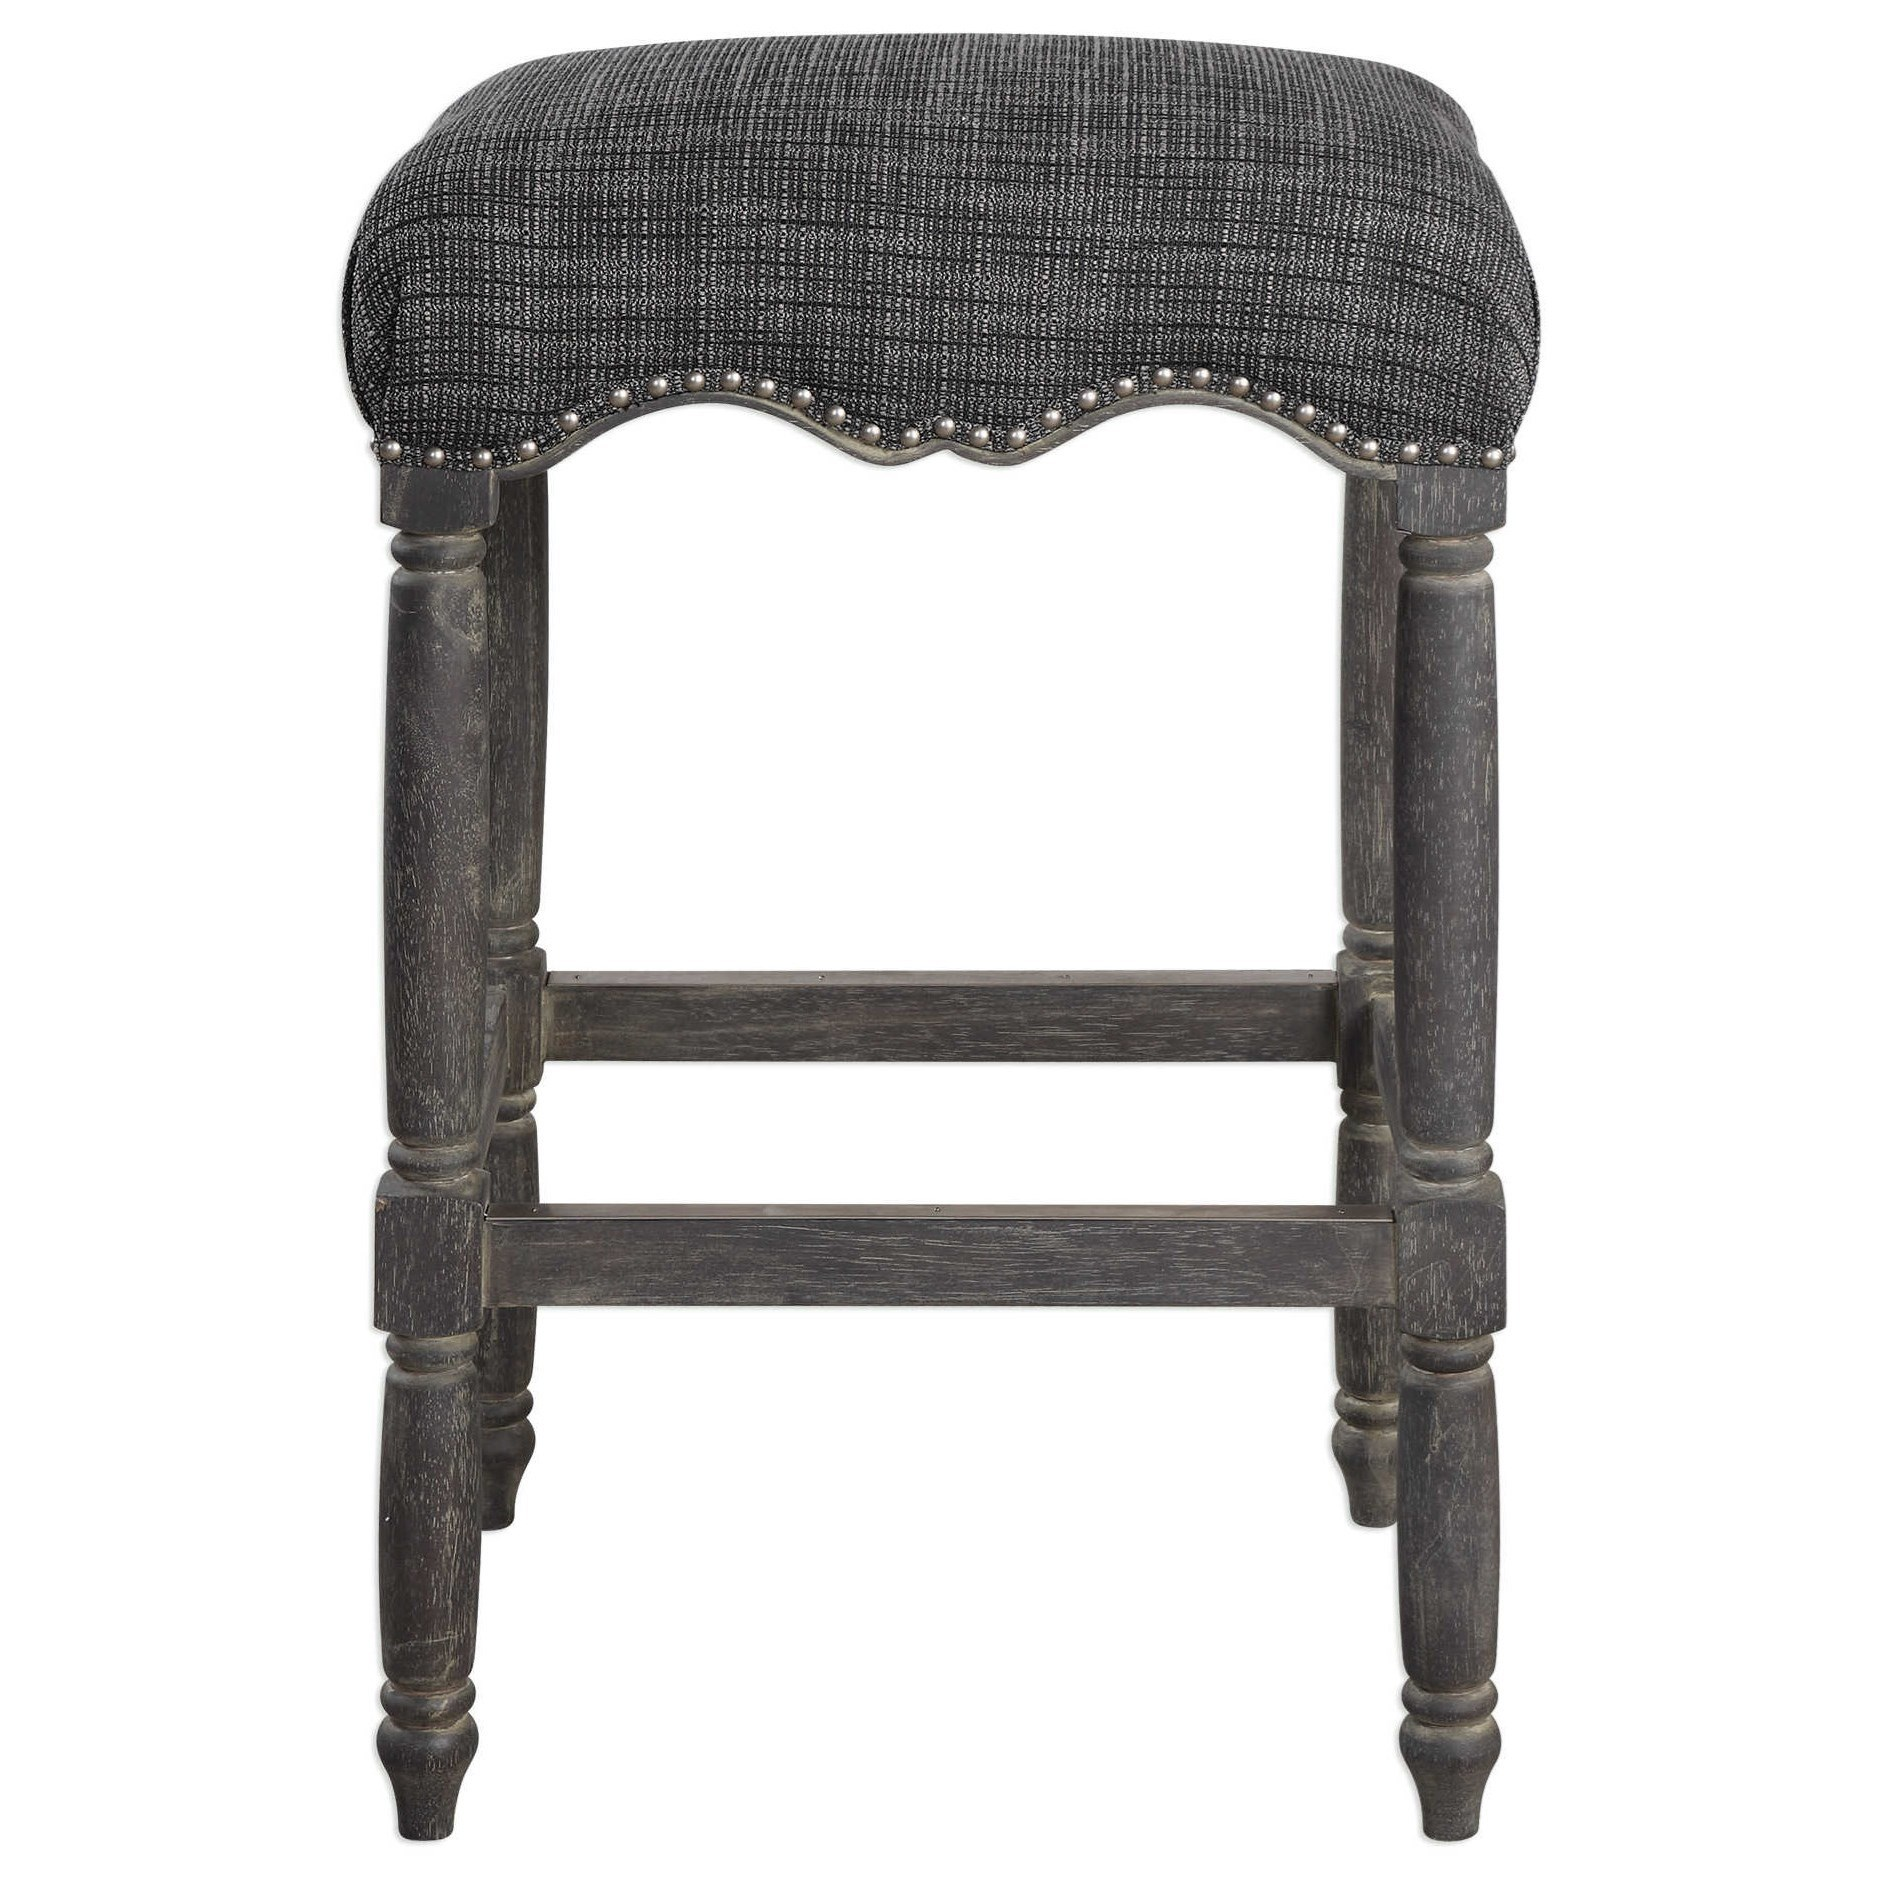 Uttermost Accent Furniture Aiden Brown Gray Bar Stool - Item Number: 23354